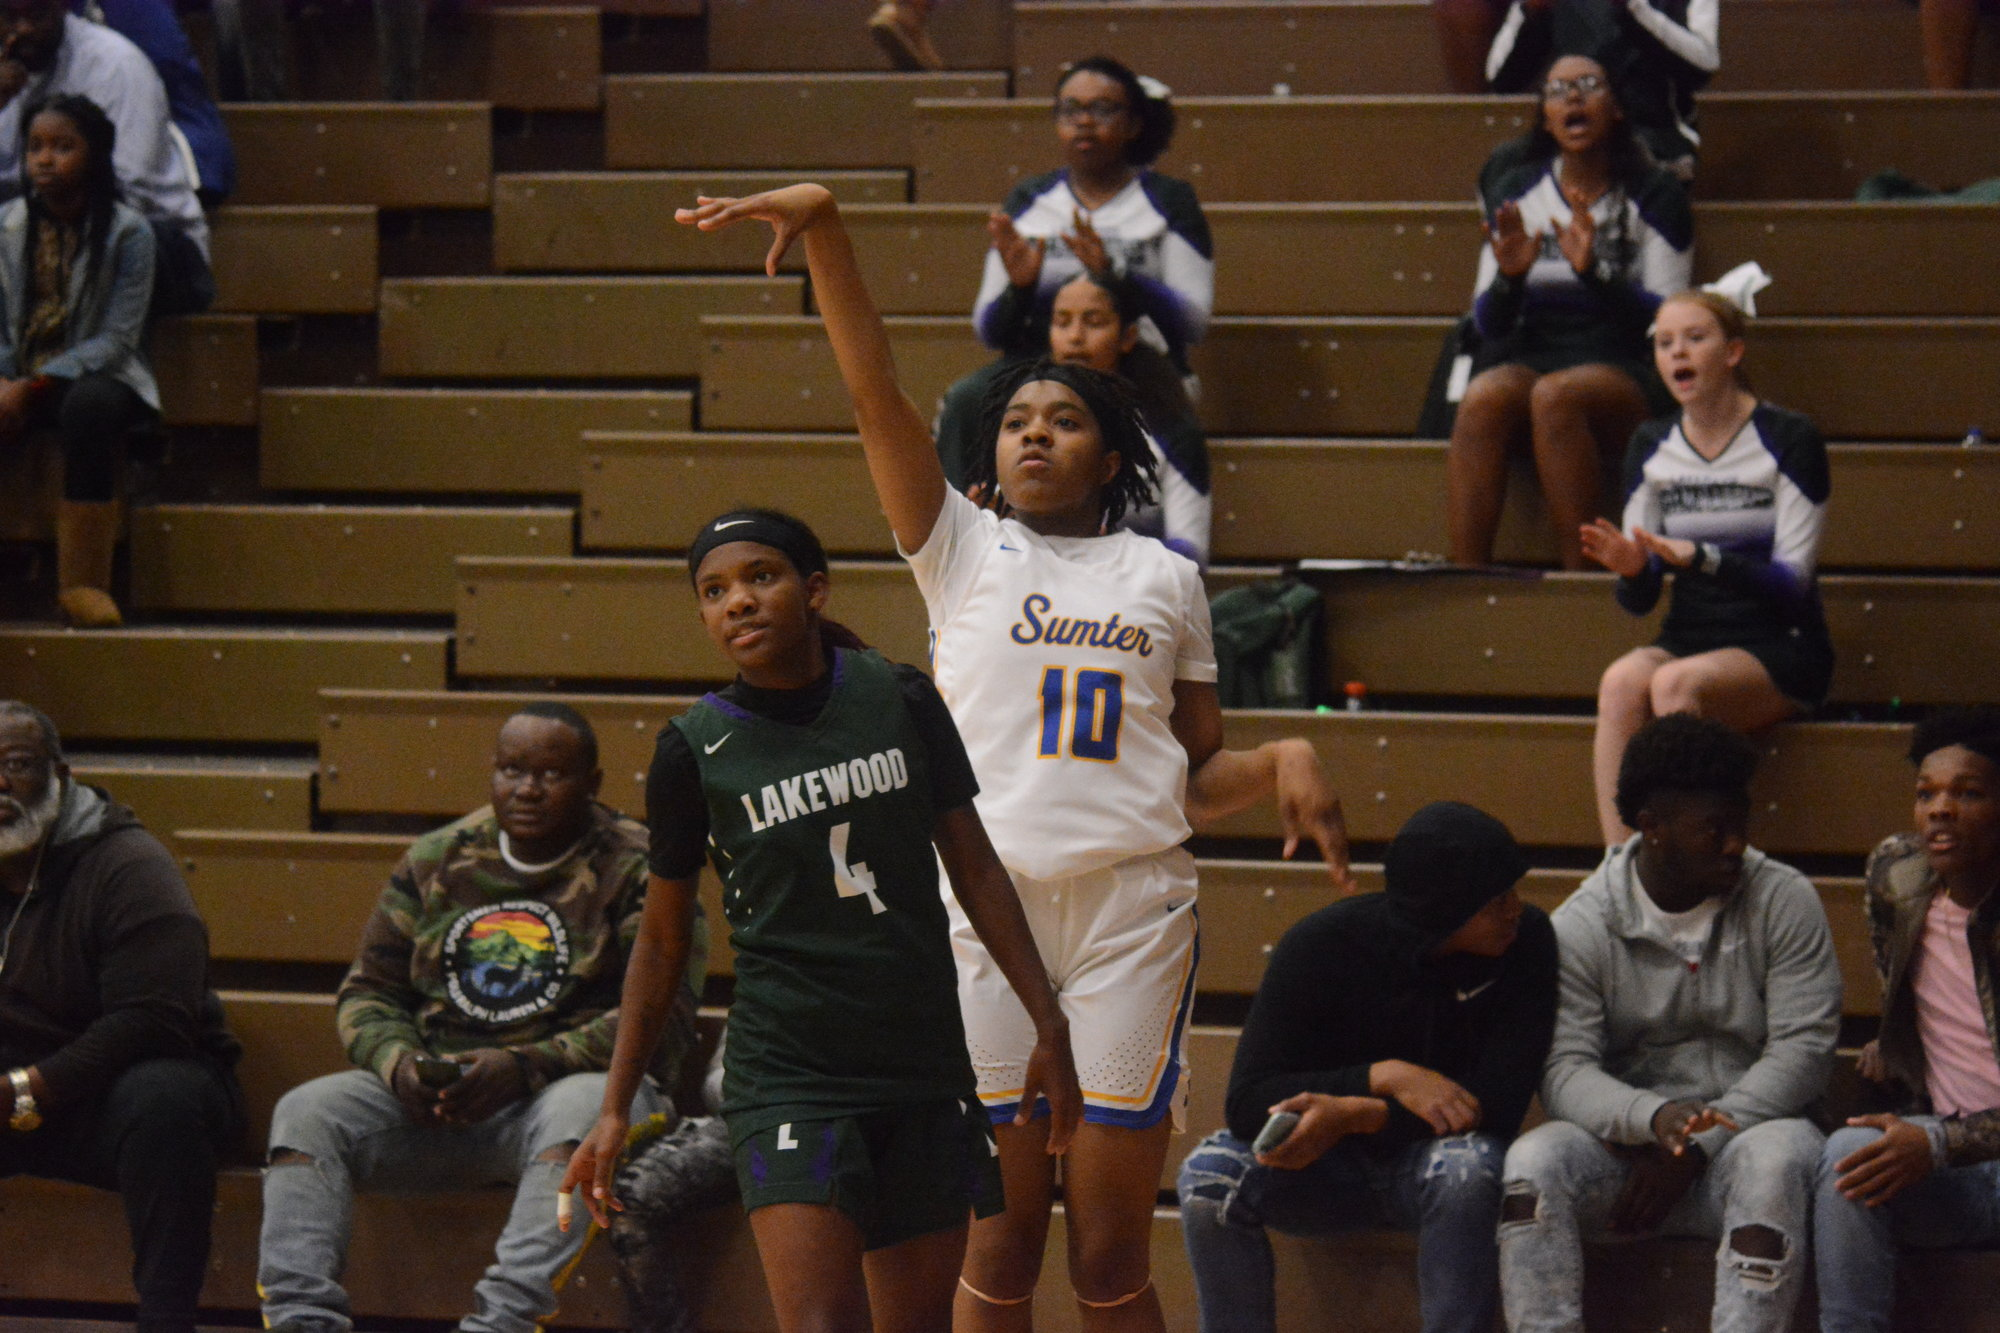 Tamerah Brown (10) watches a three point attempt against Lakewood on Saturday. Brown led all scorers with 18 points in the Lady Gamecocks' 76-27 win.